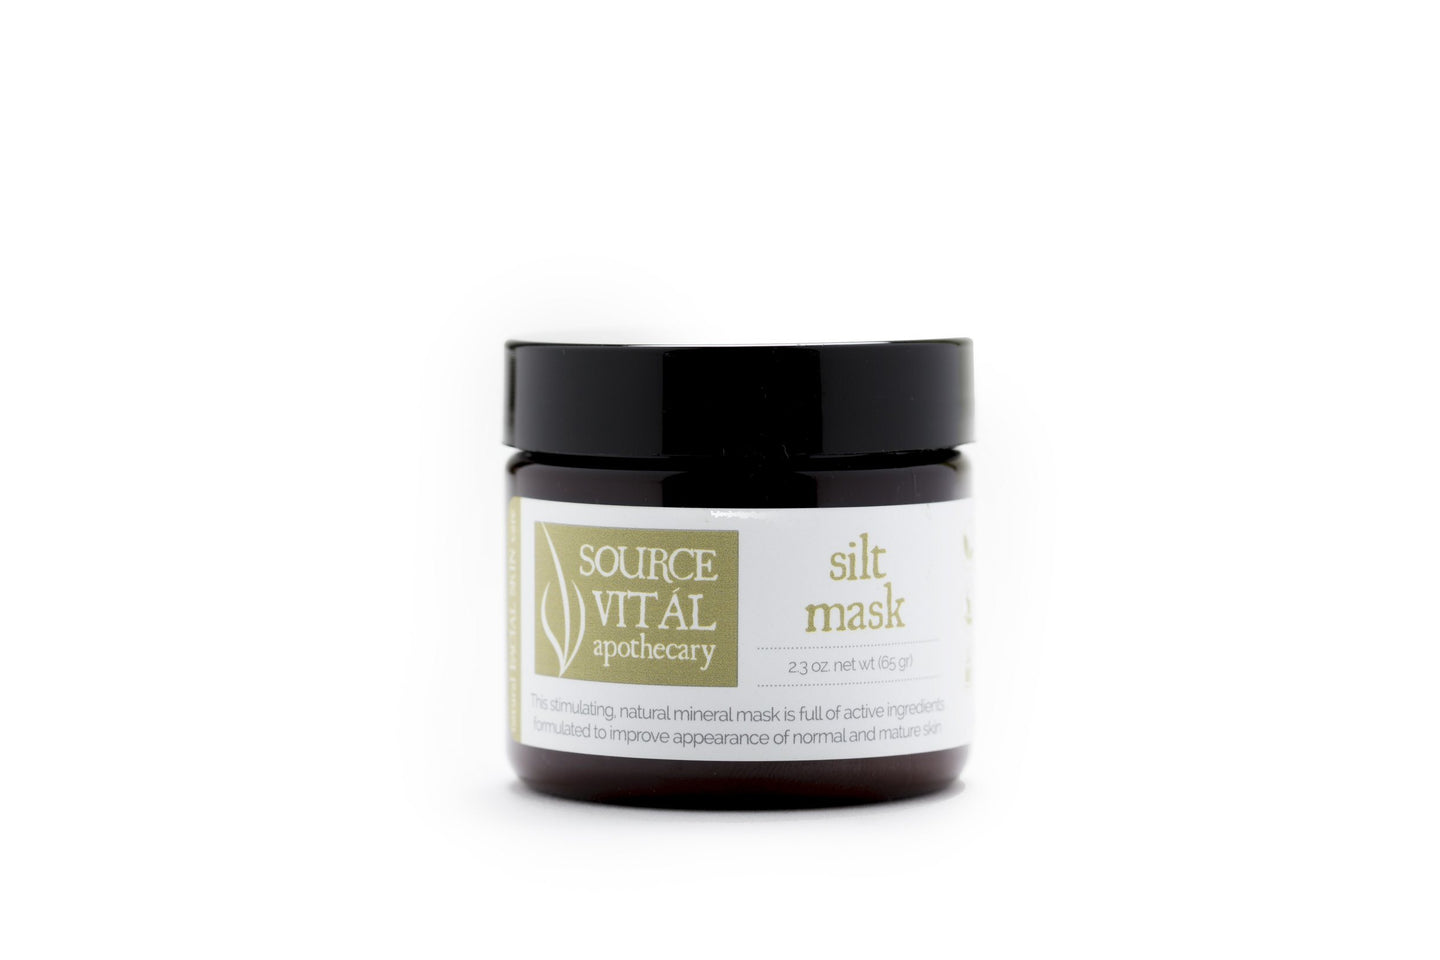 Source Vital Silt Mask - Switch 2 Pure